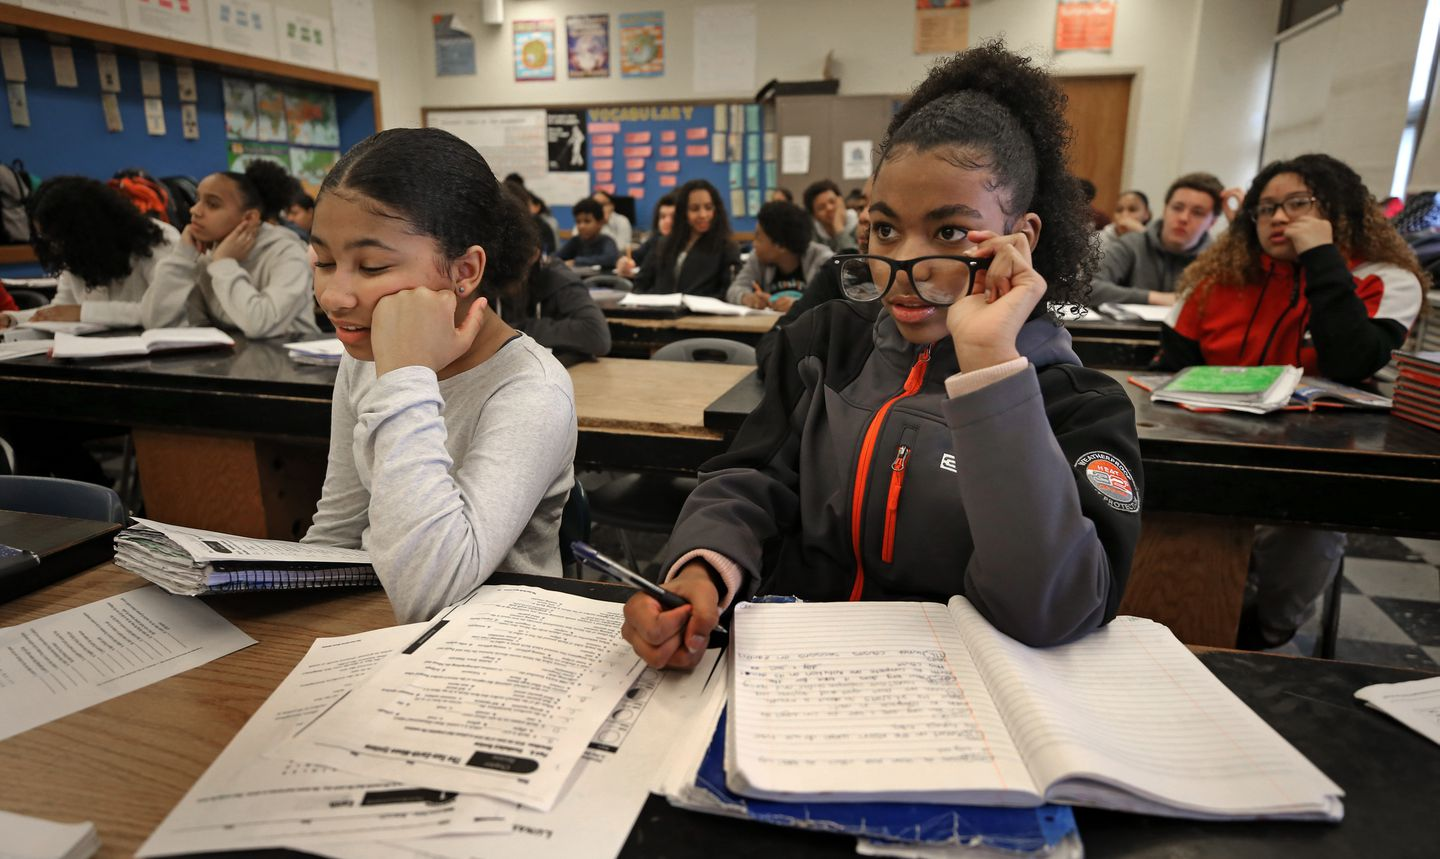 Dailene Barros used glasses she borrowed from Joceline Alexandra Oliveira (left) in an eighth-grade science class at North Middle School in Brockton.